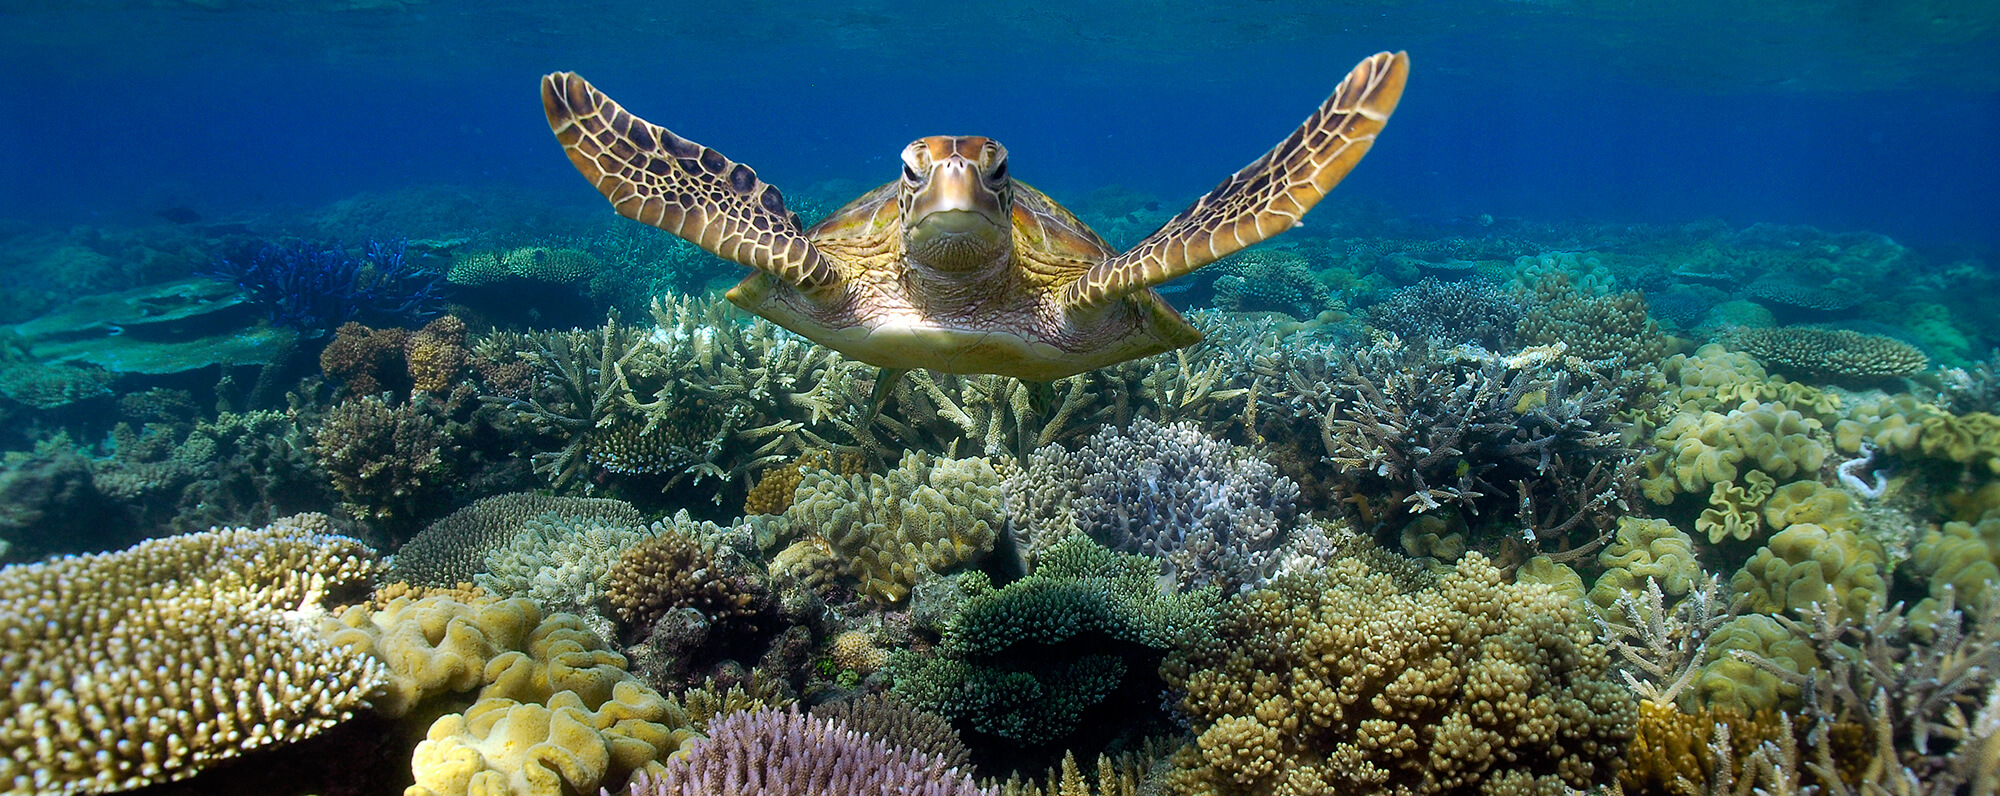 How to save the Great Barrier Reef?